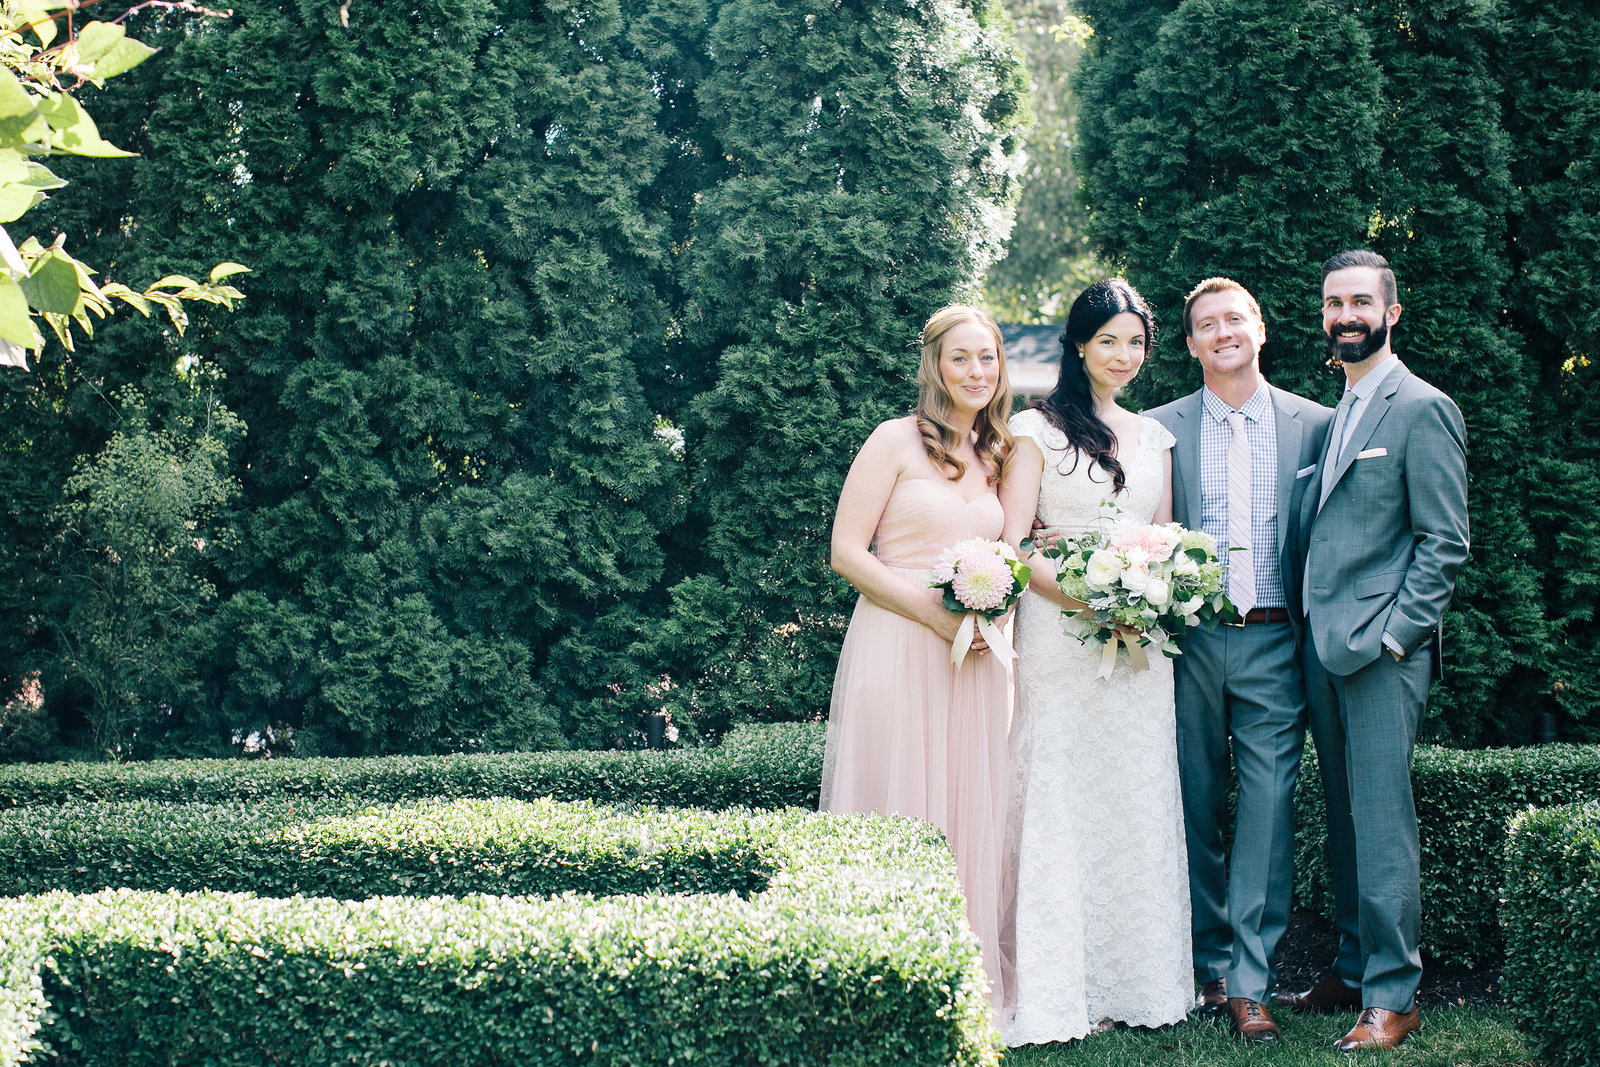 147Morgan_Kevin_WeddingIMG_4579